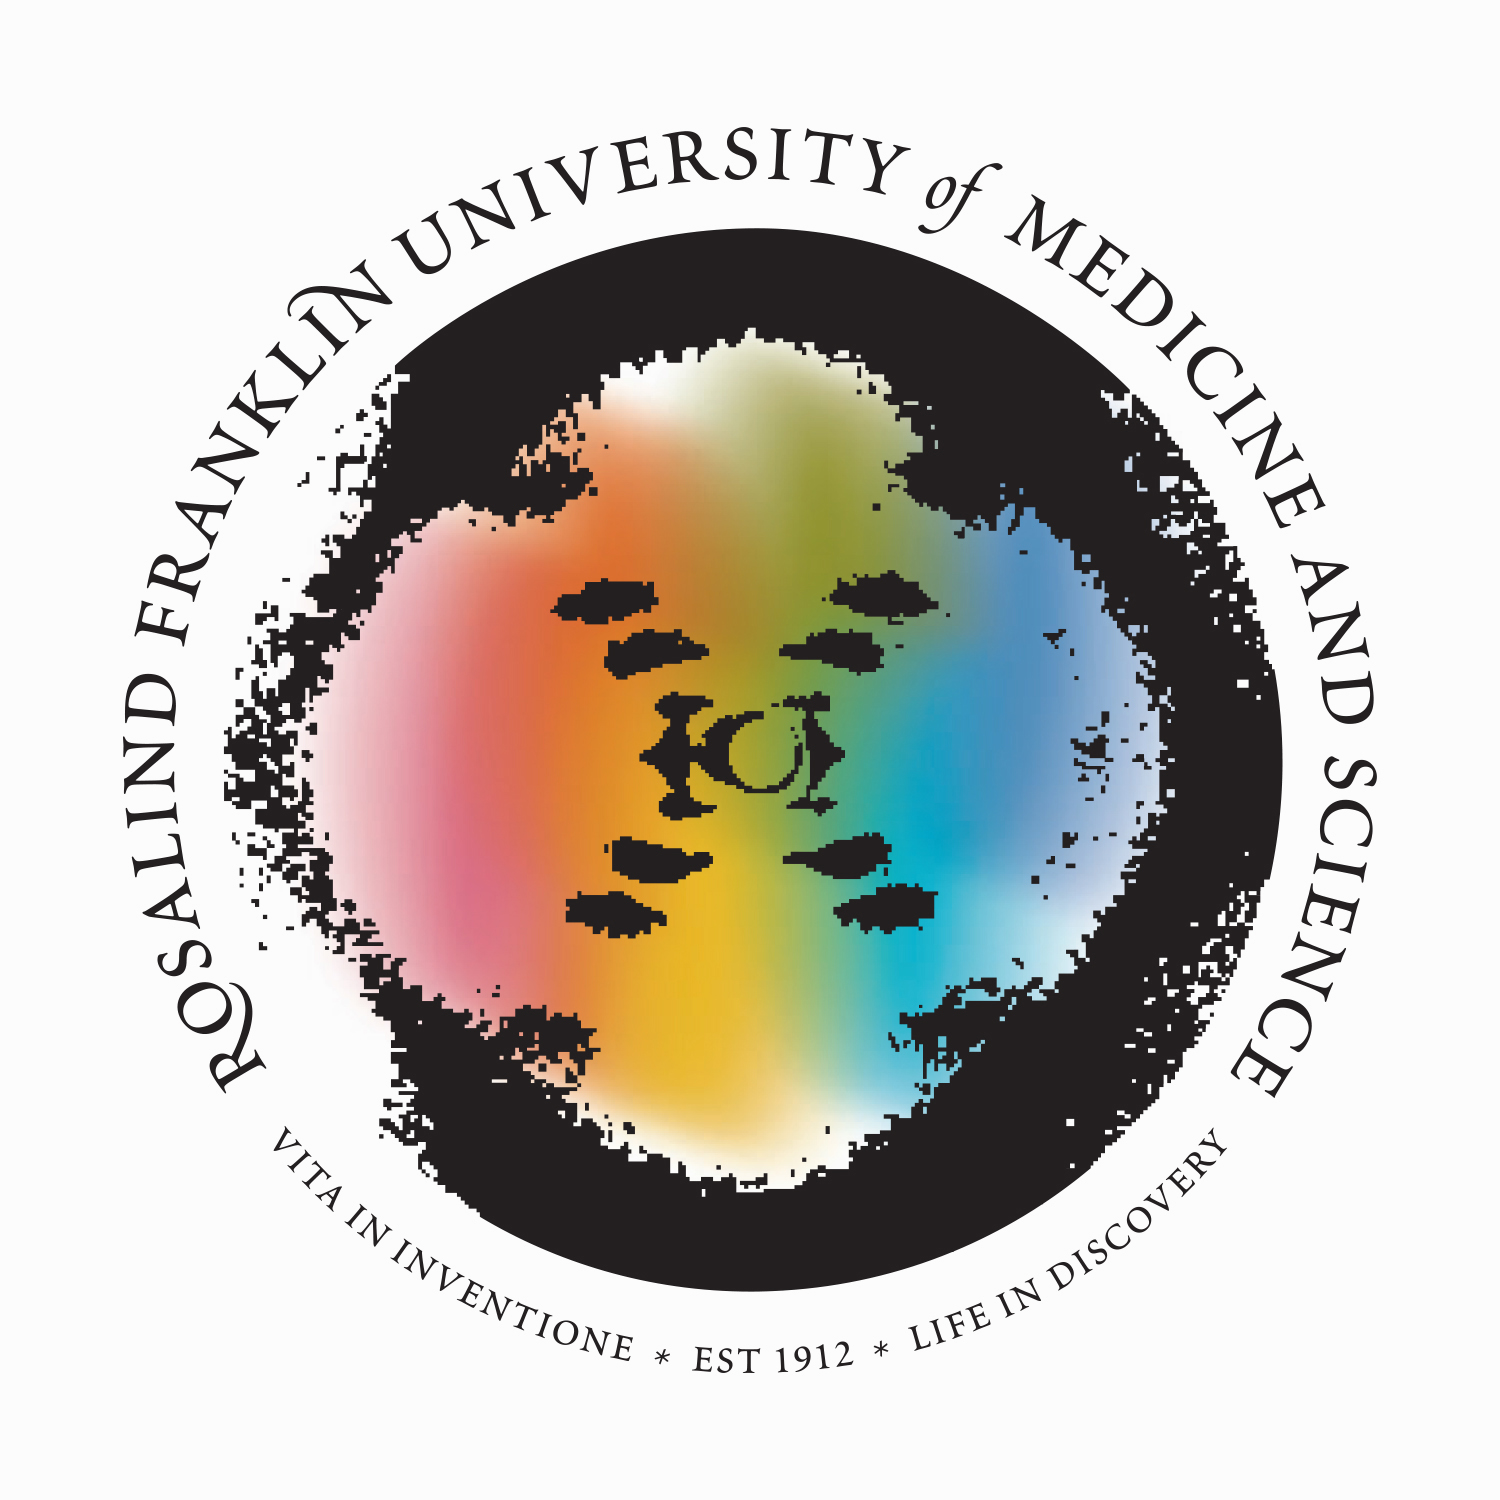 The logo utilizesPhoto 51 - the image of DNA that Franklin was the first to capture. Thespectrumsignifies x-ray crystalography,the process she used to capture the image.